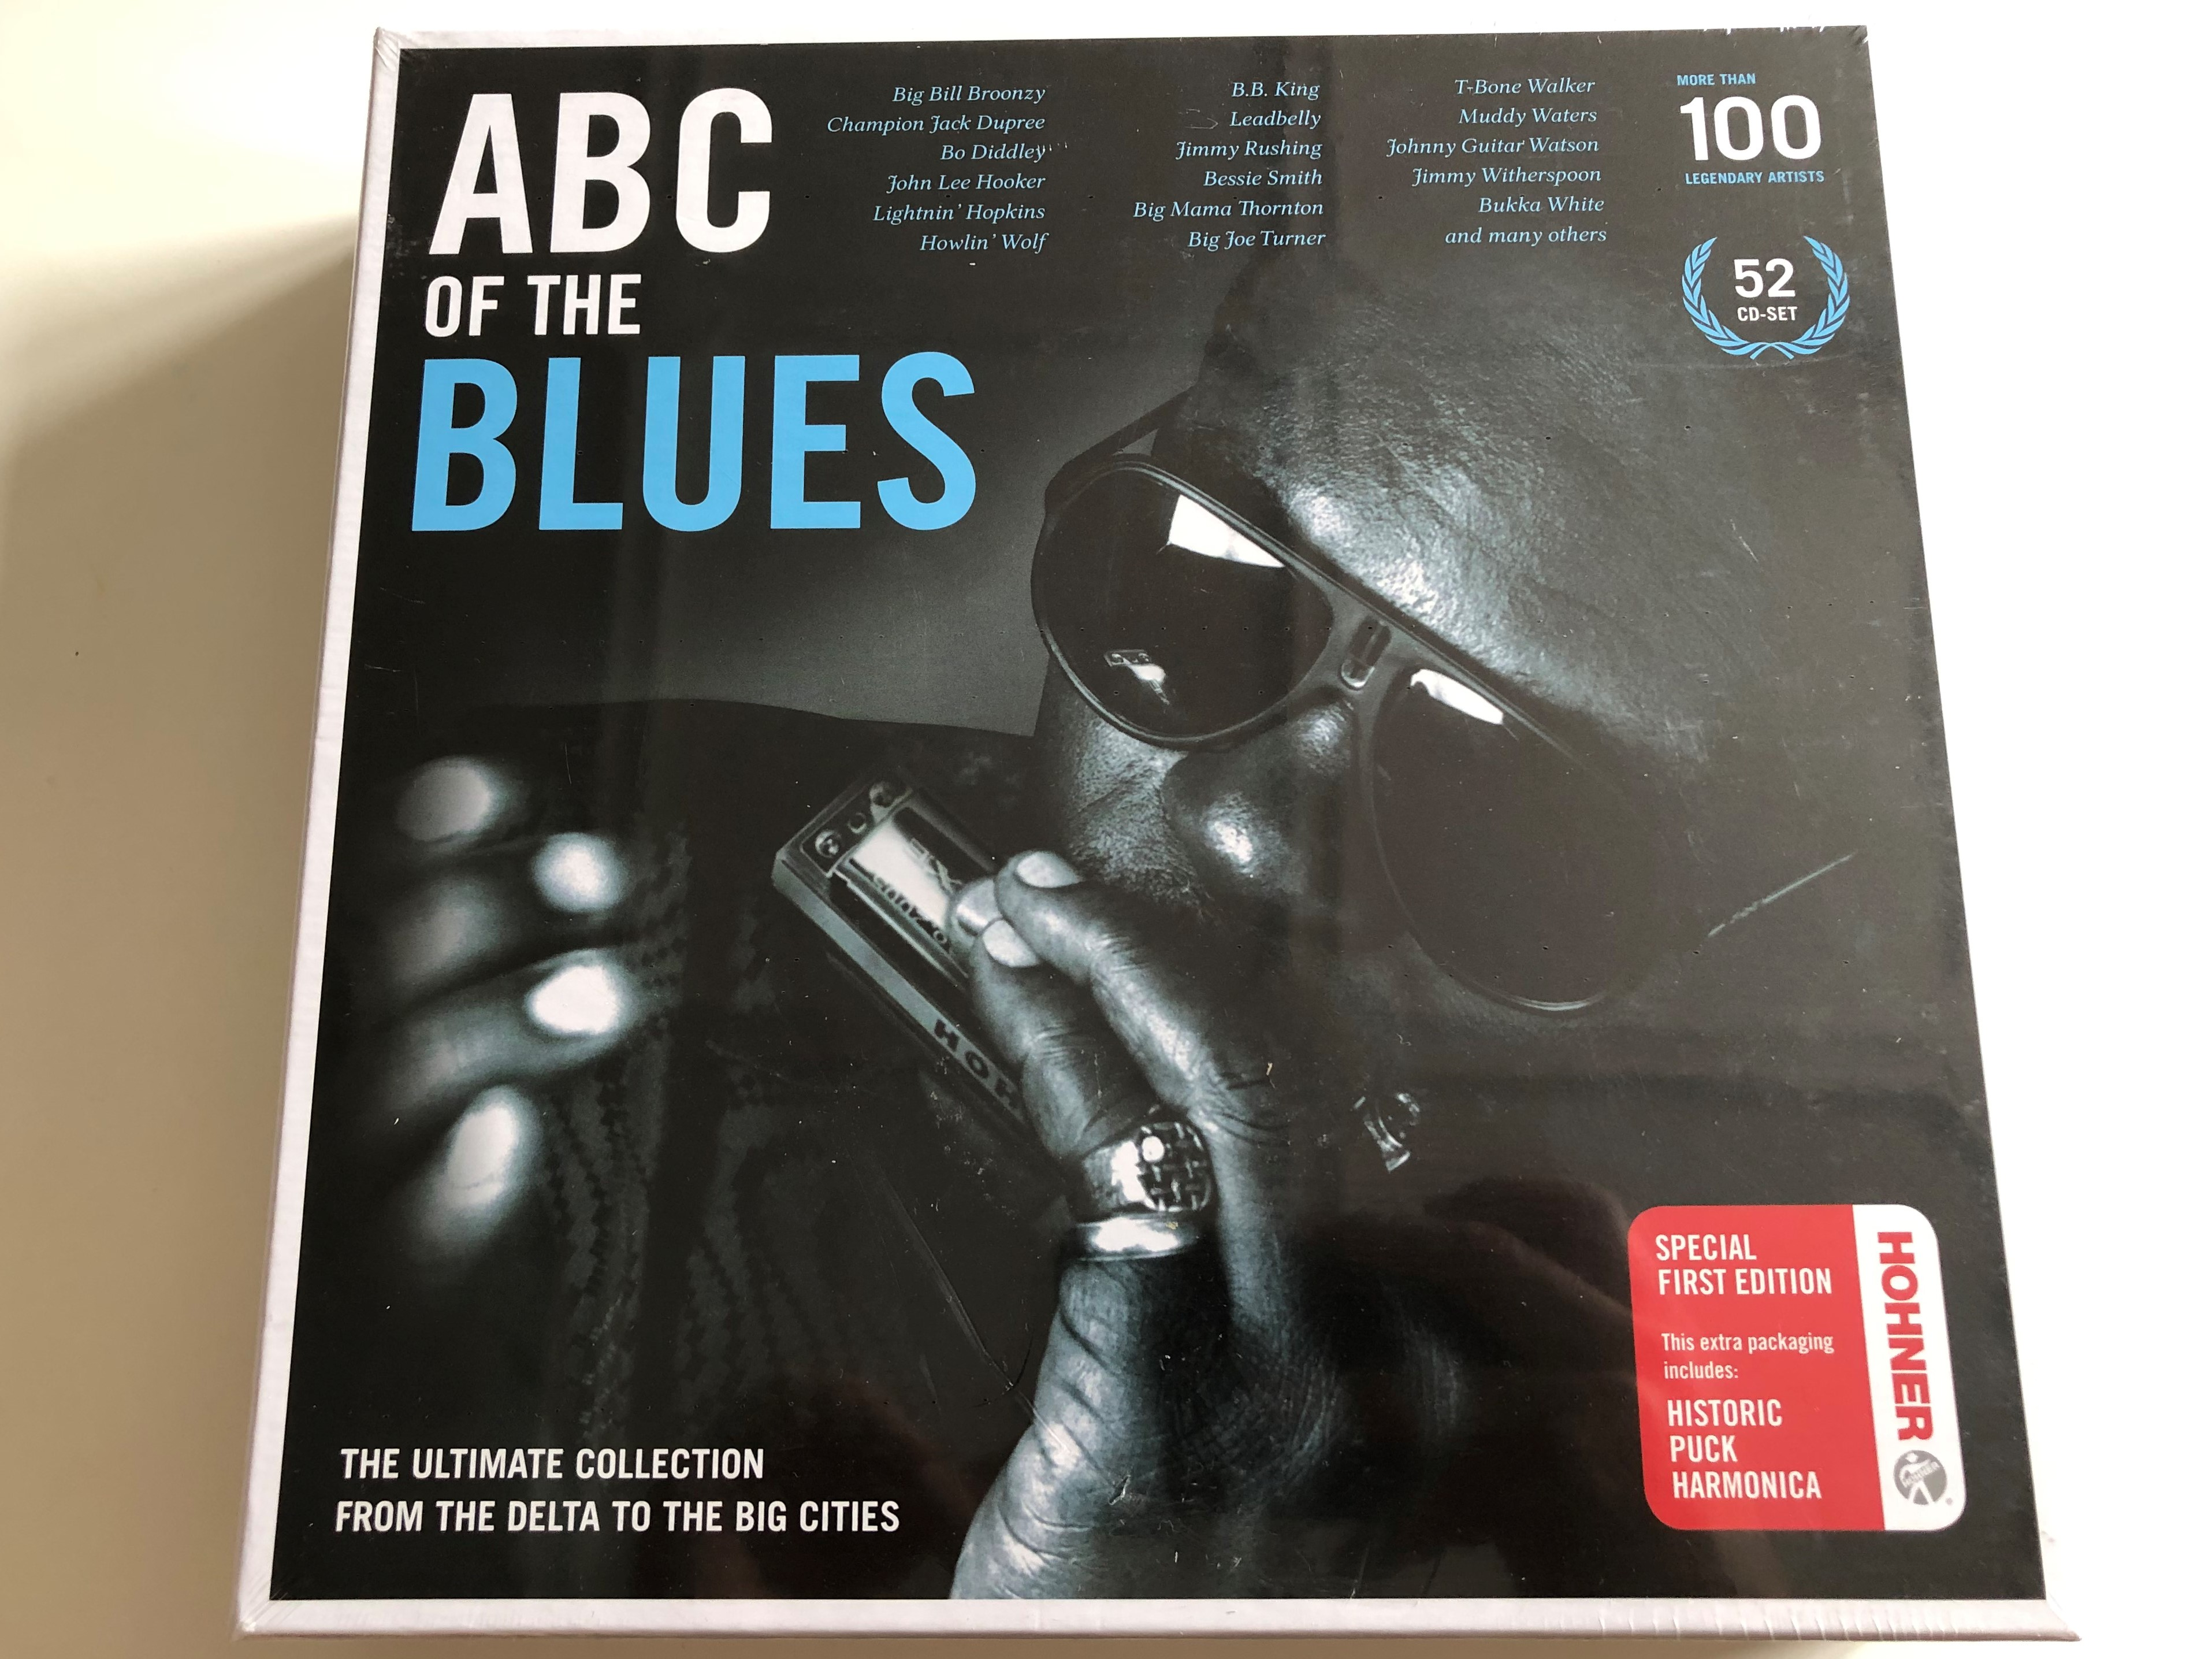 abc-of-the-blues-the-ultimate-collection-from-the-delta-to-the-big-cities-big-bill-broonzy-bo-diddley-howlin-wolf-leadbelly-bessie-smith-big-joe-turner-muddy-waters-bukka-white-documen-1-.jpg